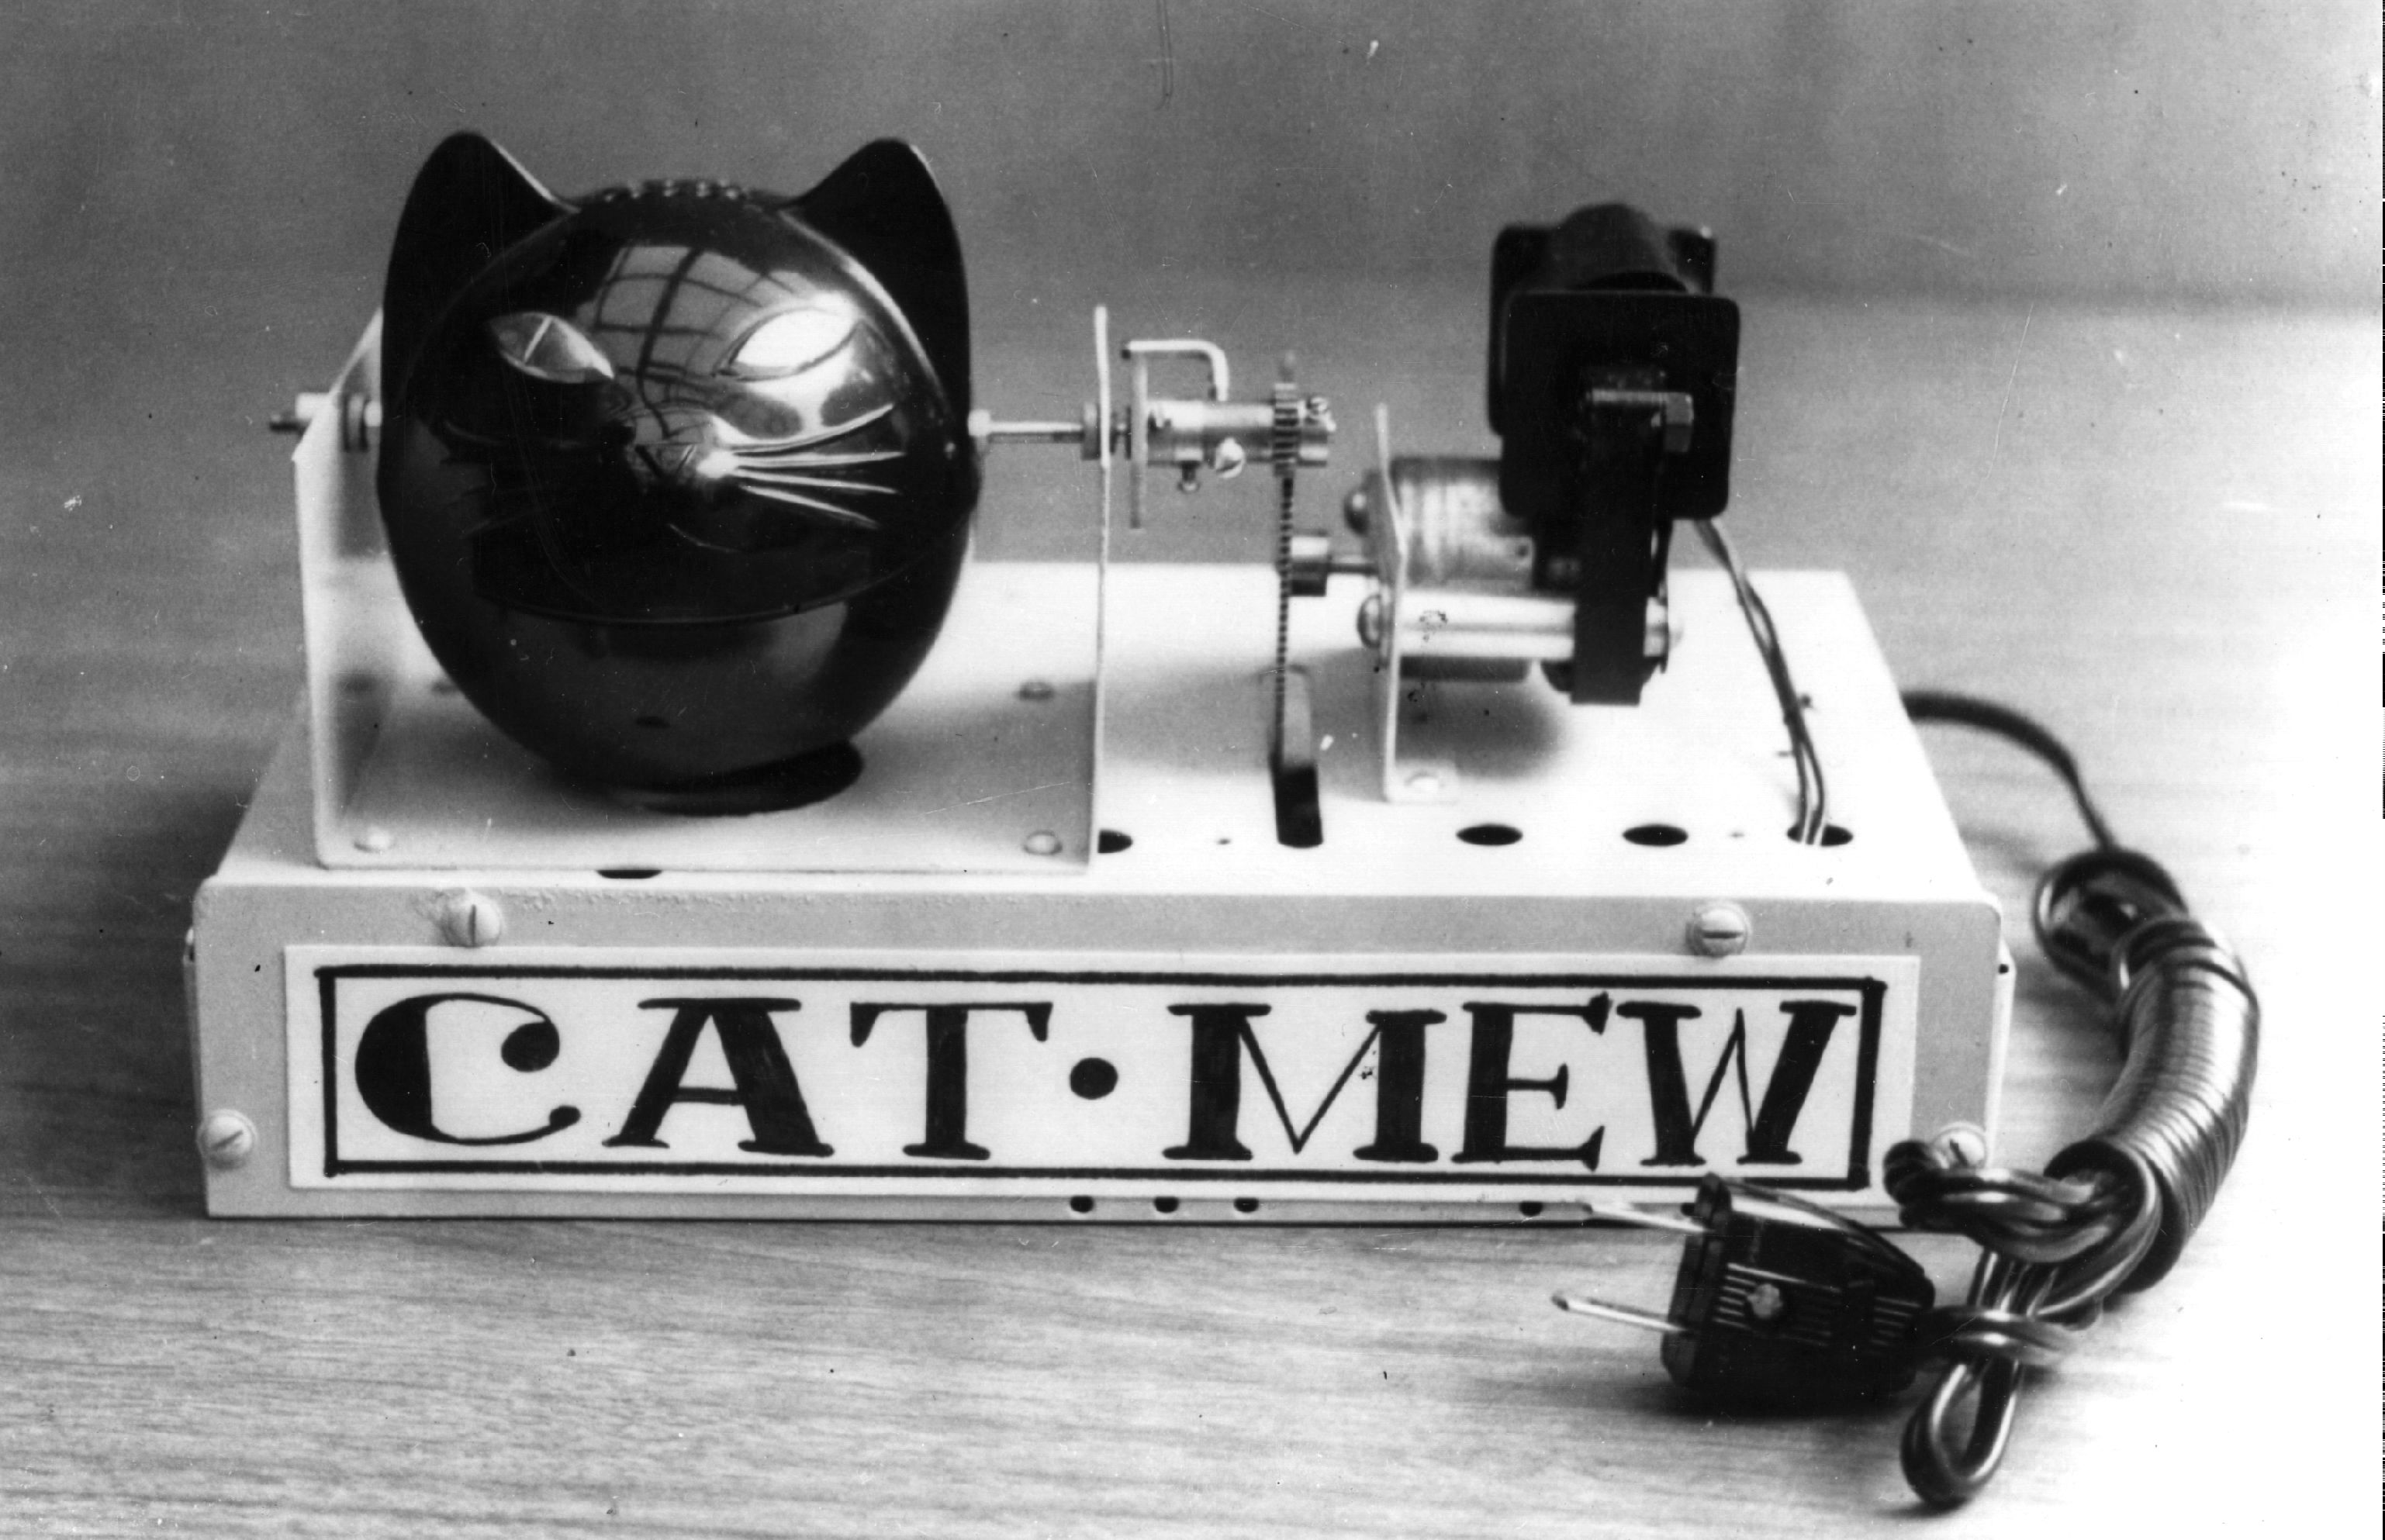 cat meow device